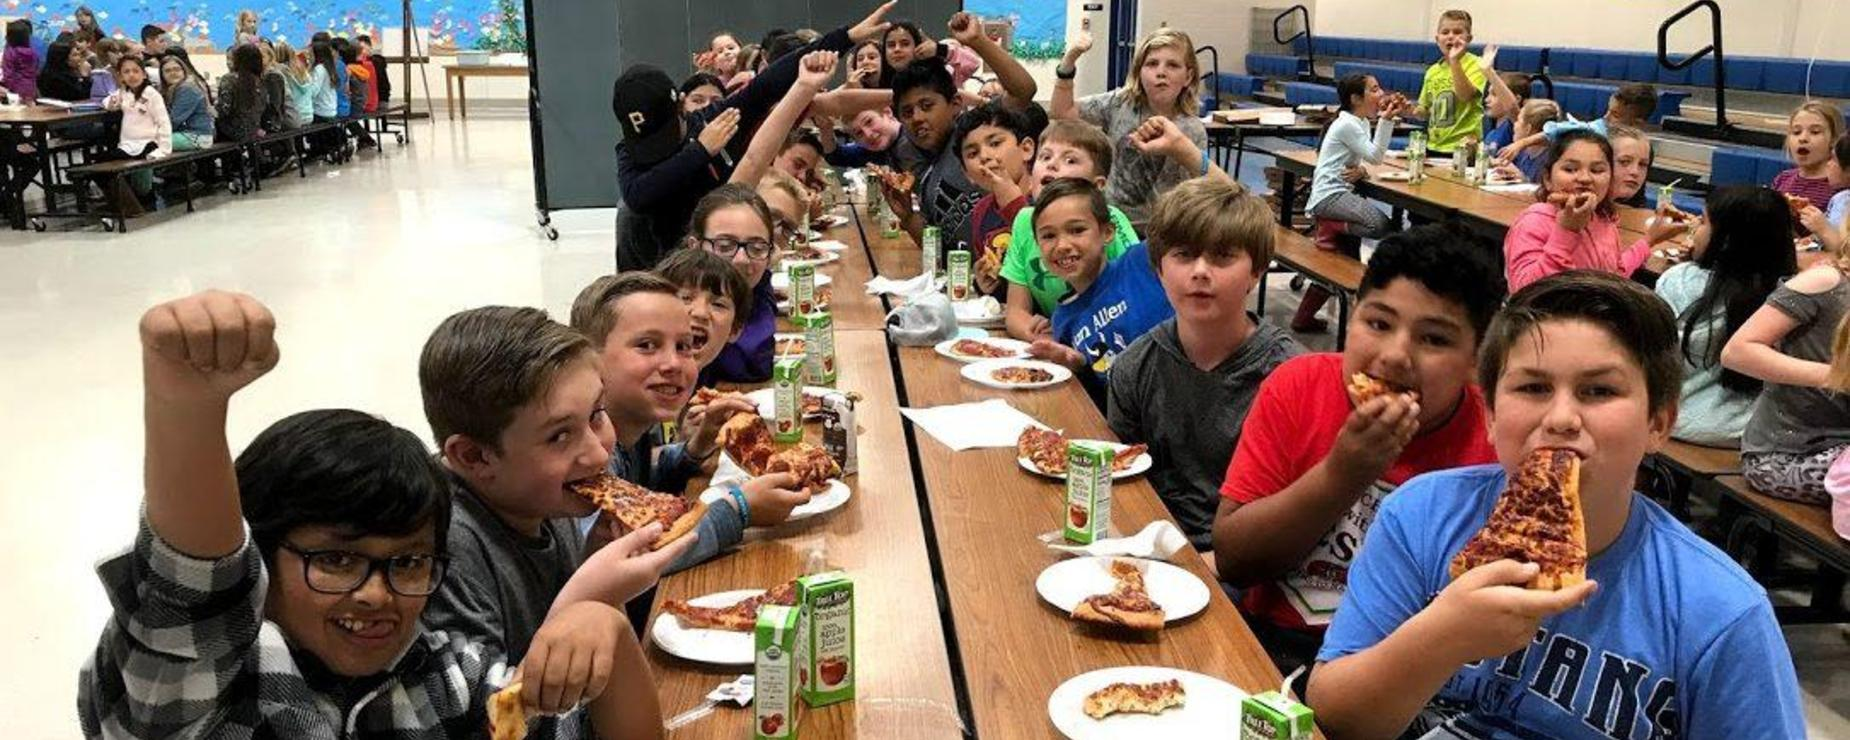 students eating pizza together in the cafeteria